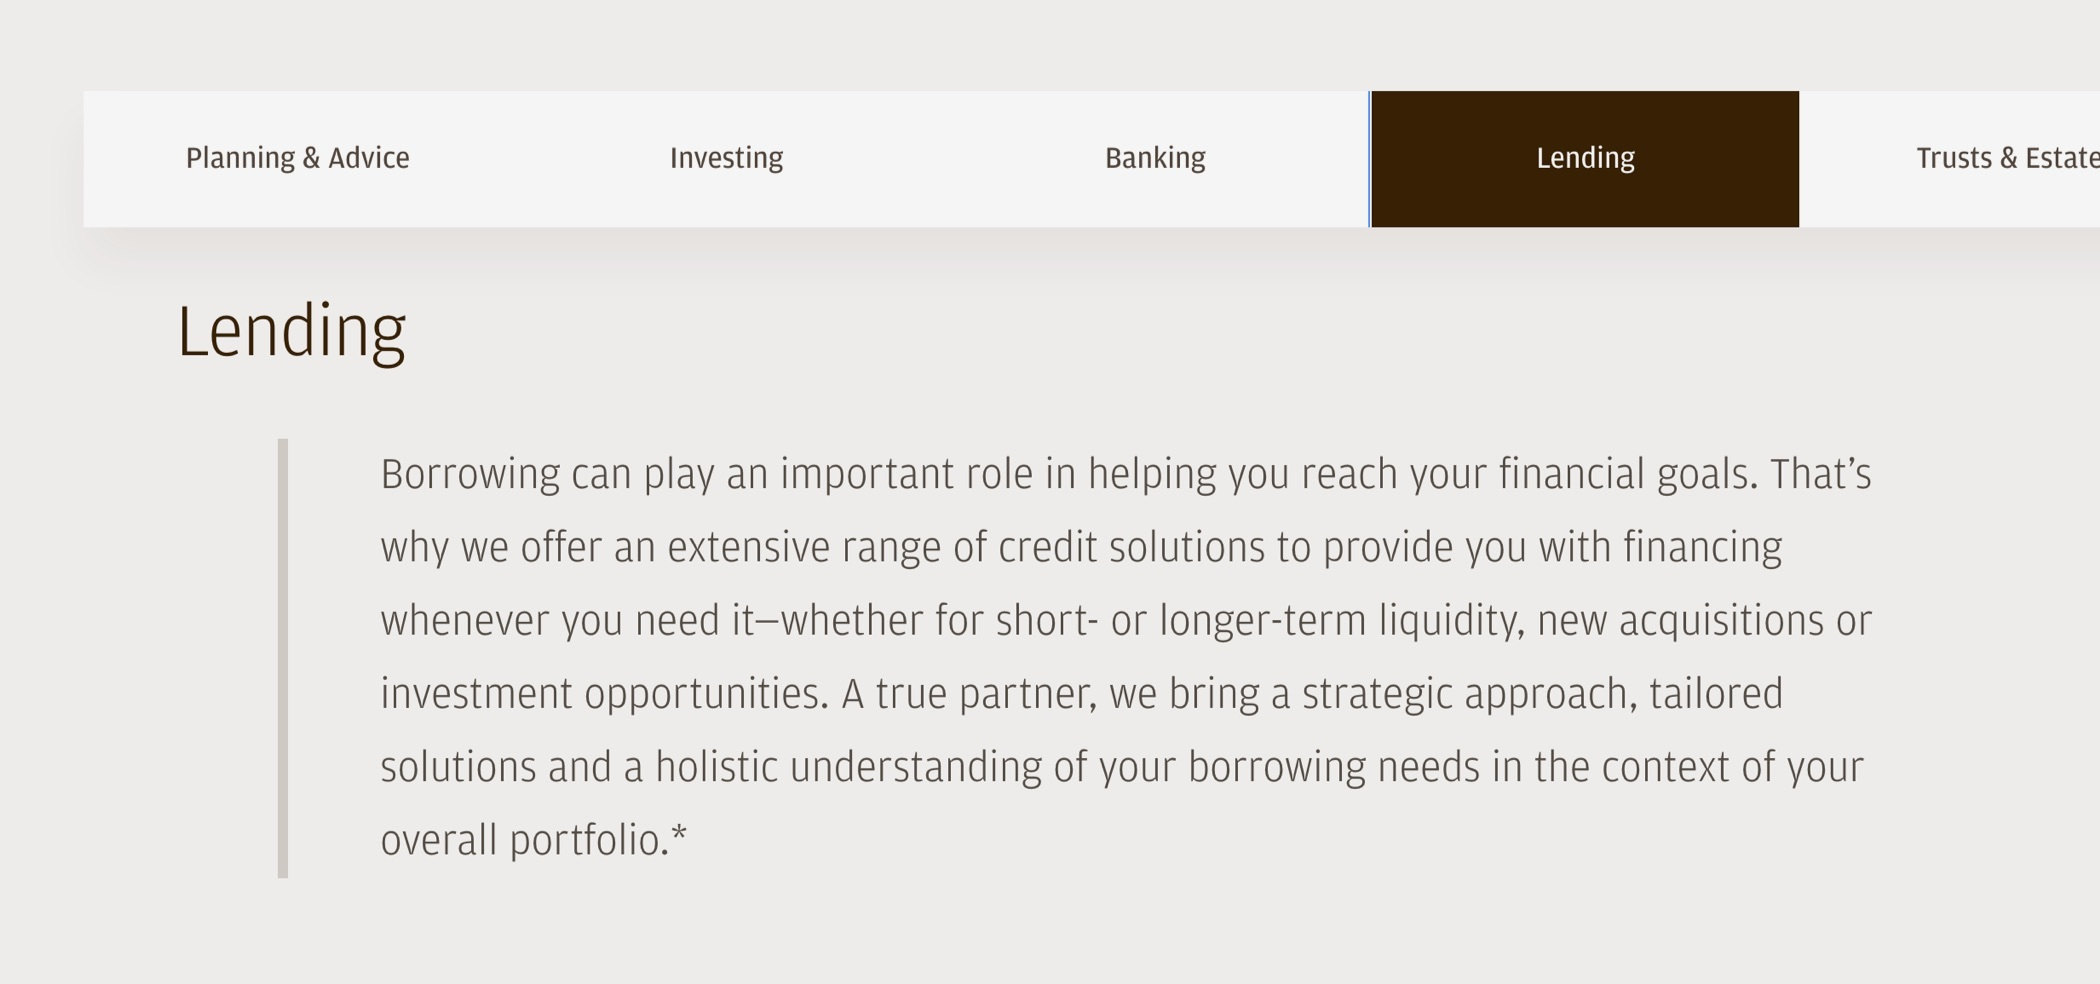 J.P. Morgan Private Bank Lending web page with introduction about the service and its benefit to client financial goals.